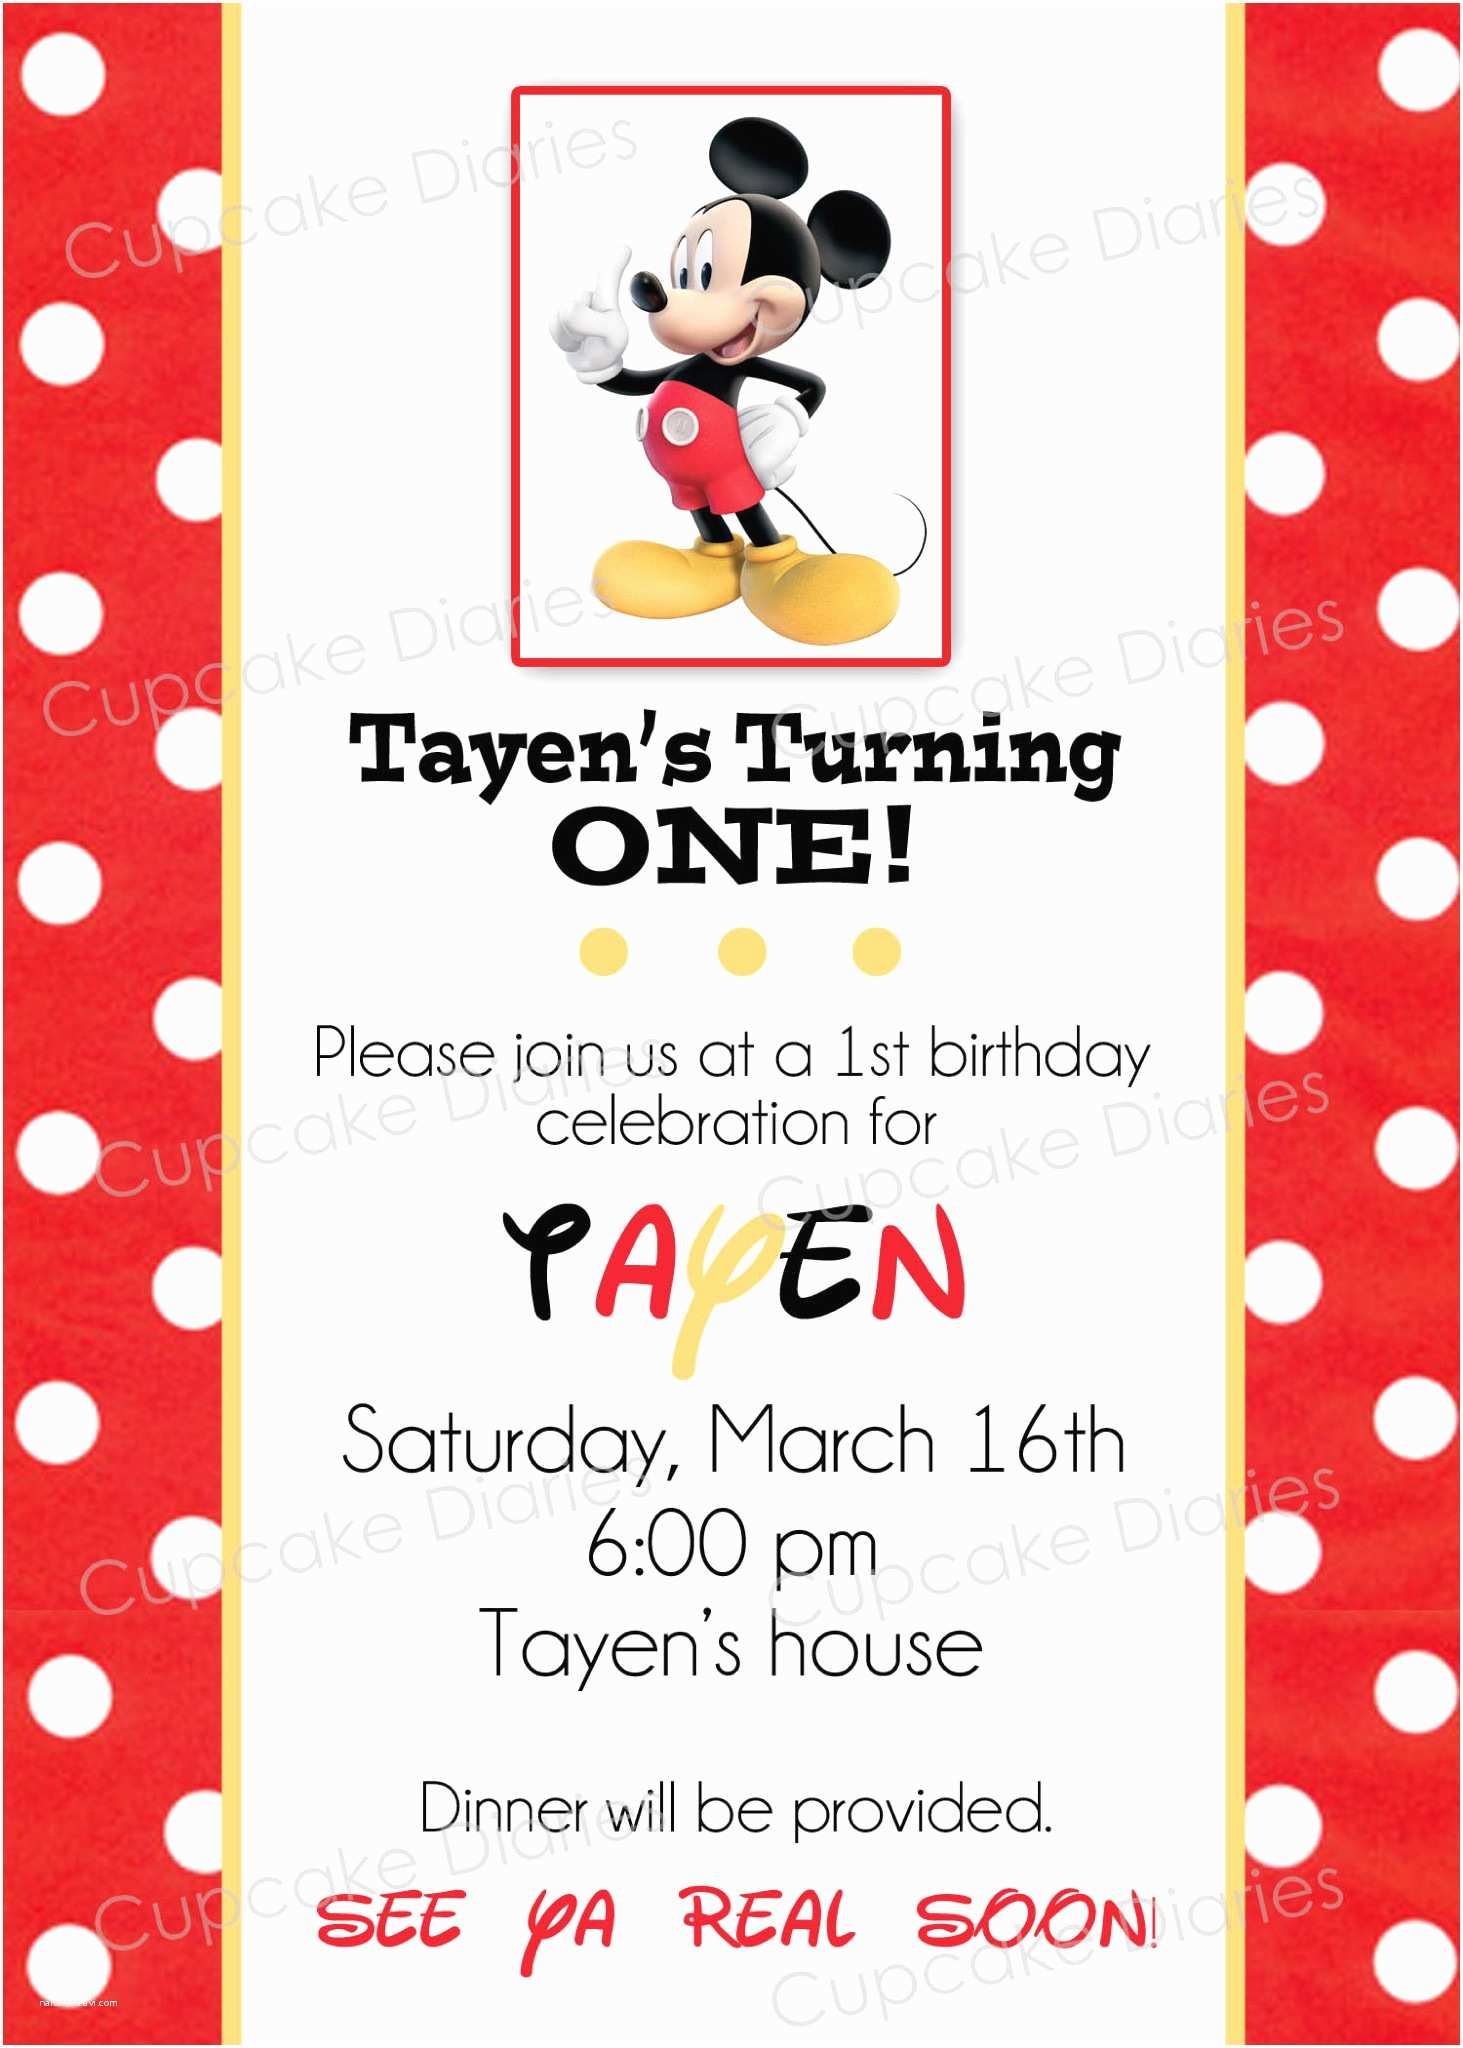 Mickey Mouse Birthday Party Invitations Simple Mickey Mouse Birthday Party Free Subway Art